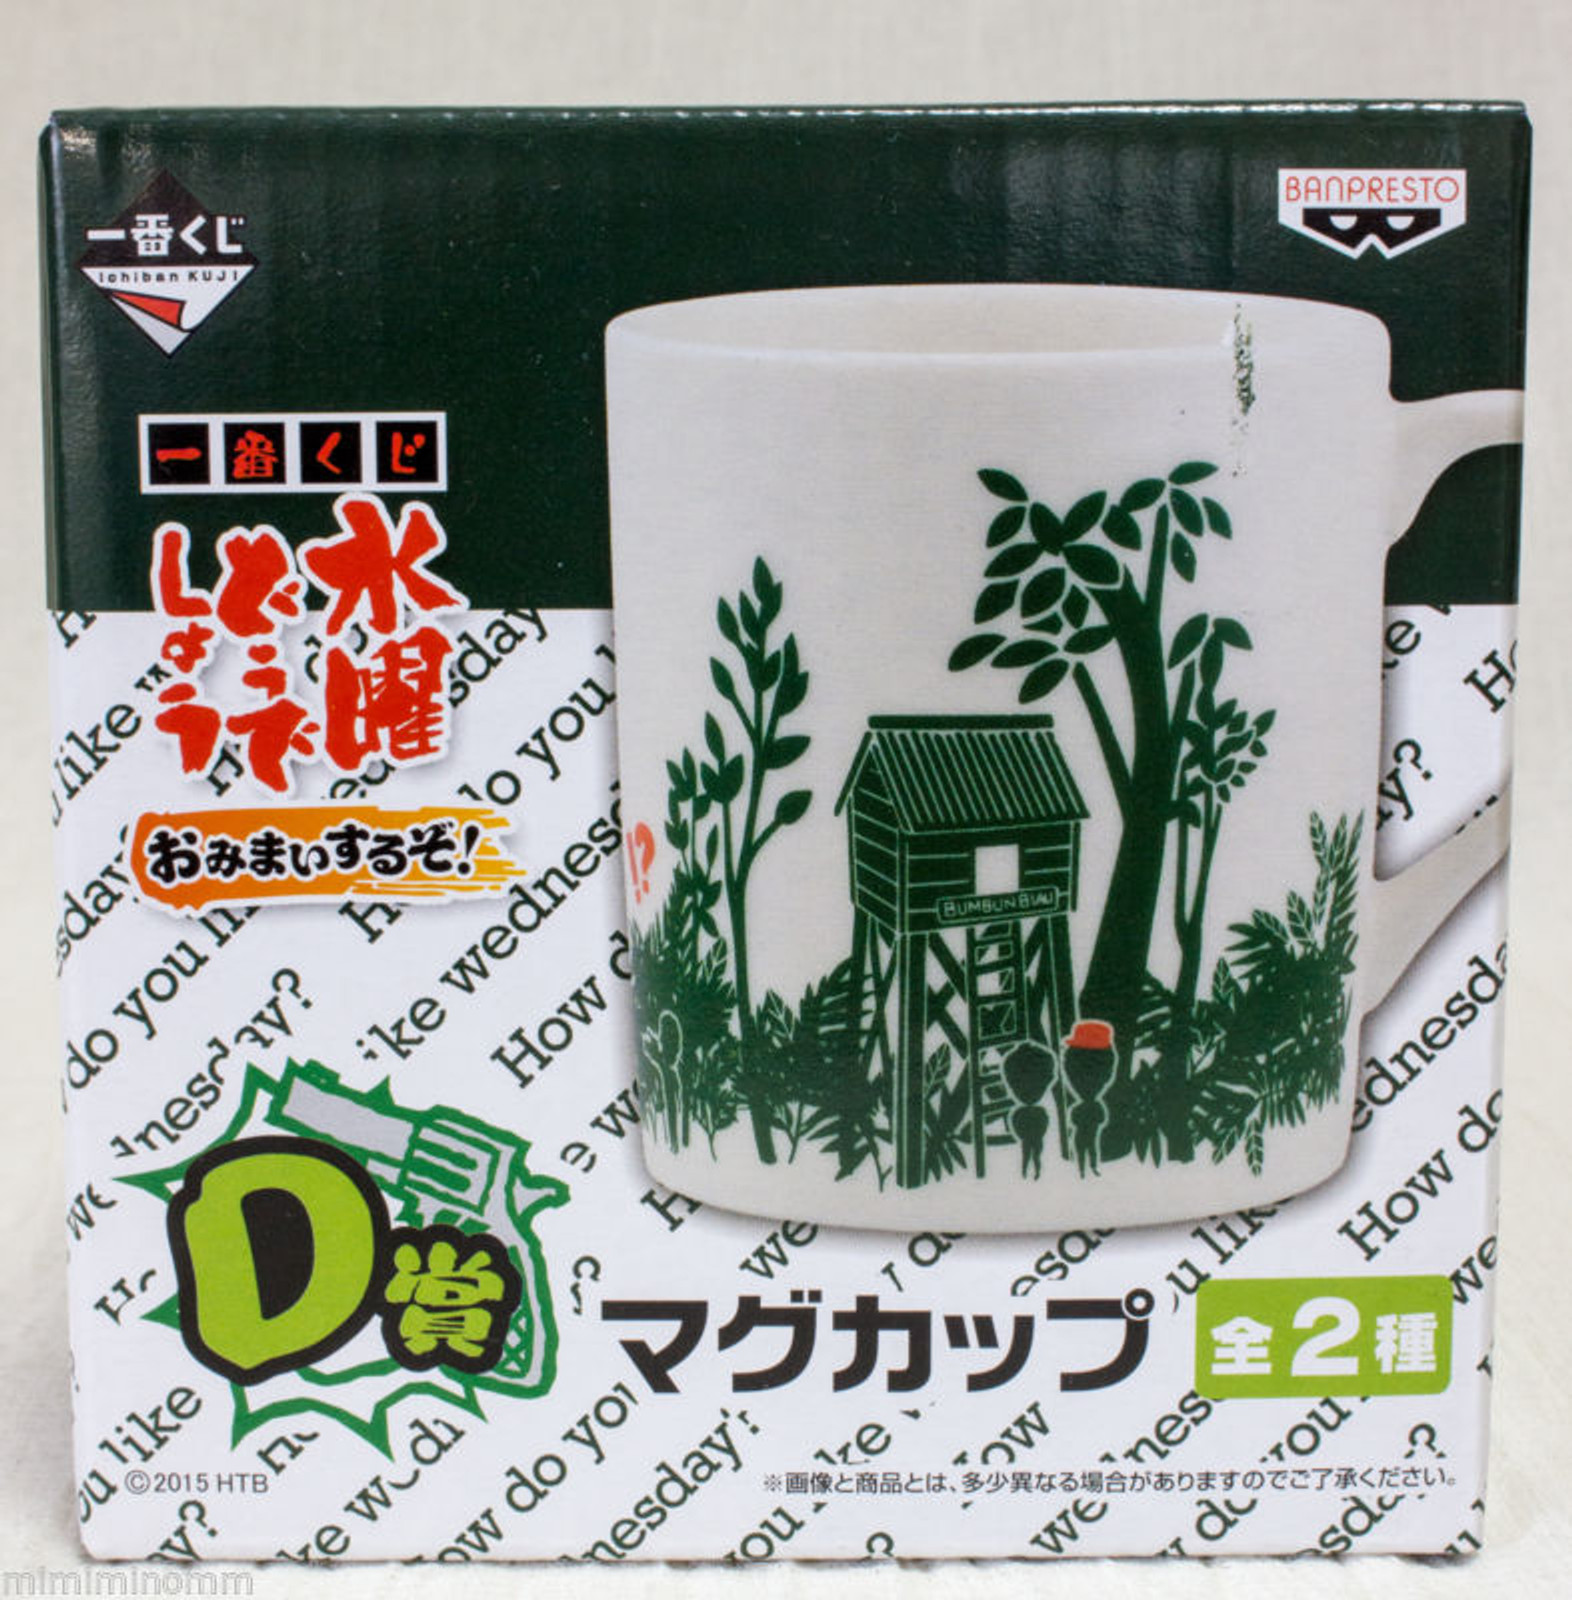 Suiyo Dou Deshou How do you Wednesday Mug Cup Banpresto Ooizumi You JAPAN TV